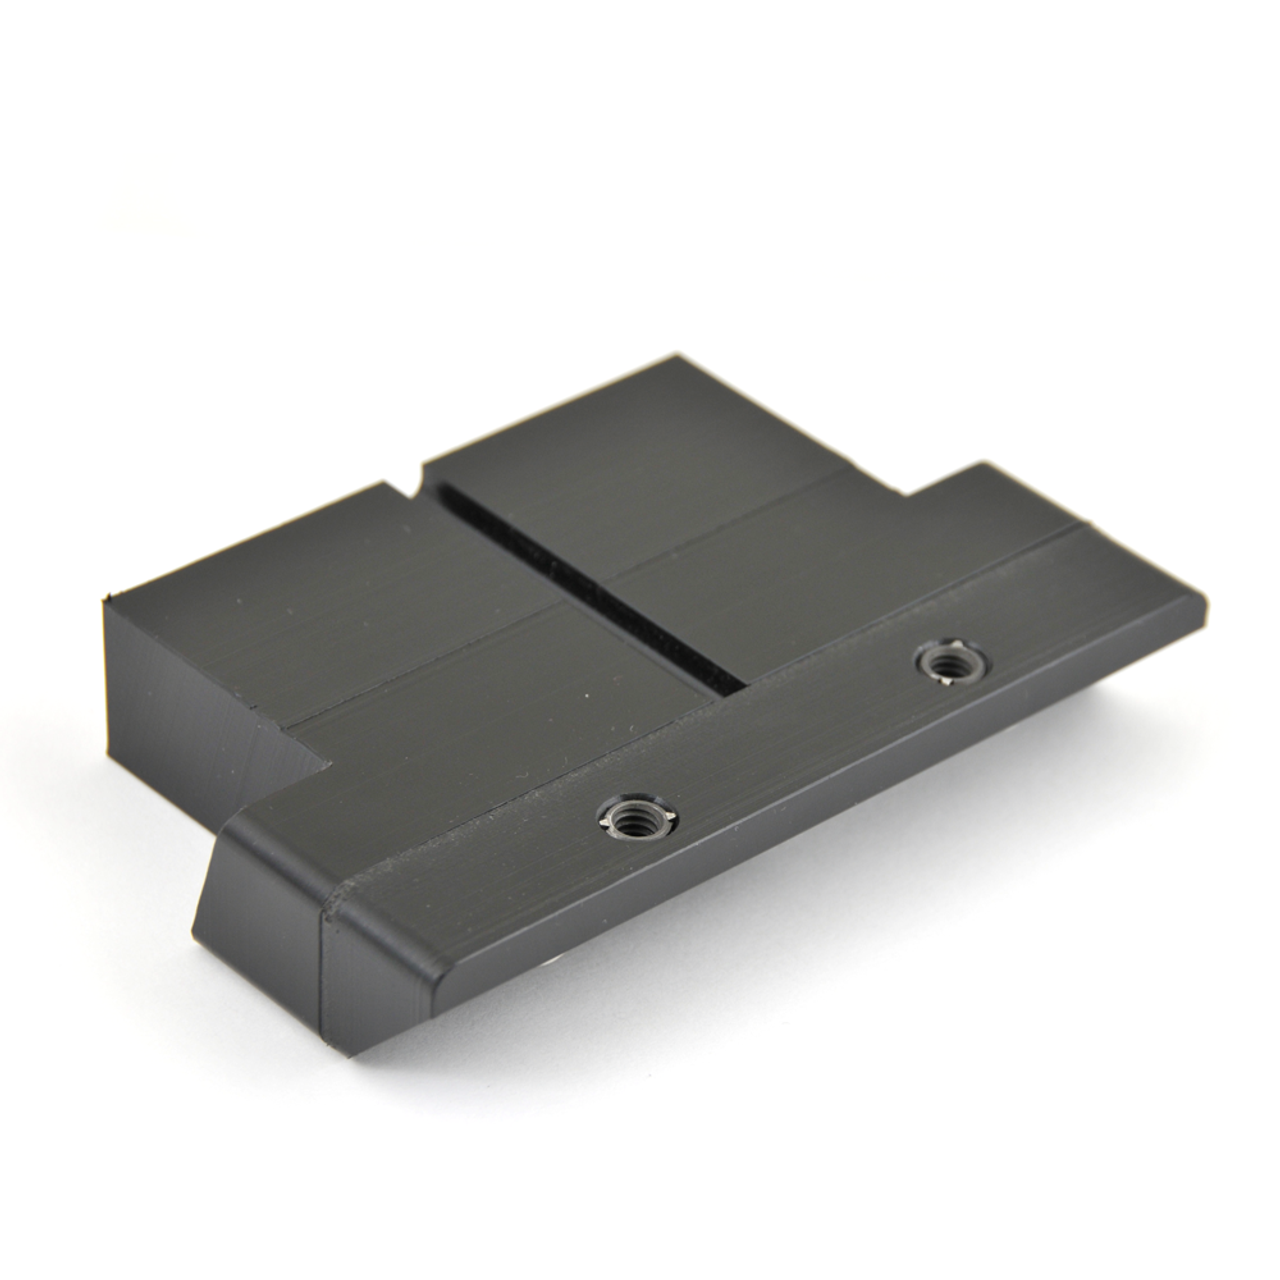 80 Series Useless Cubby Insert-base (UCI-1) shown with the Angle Insert mounted at 90deg